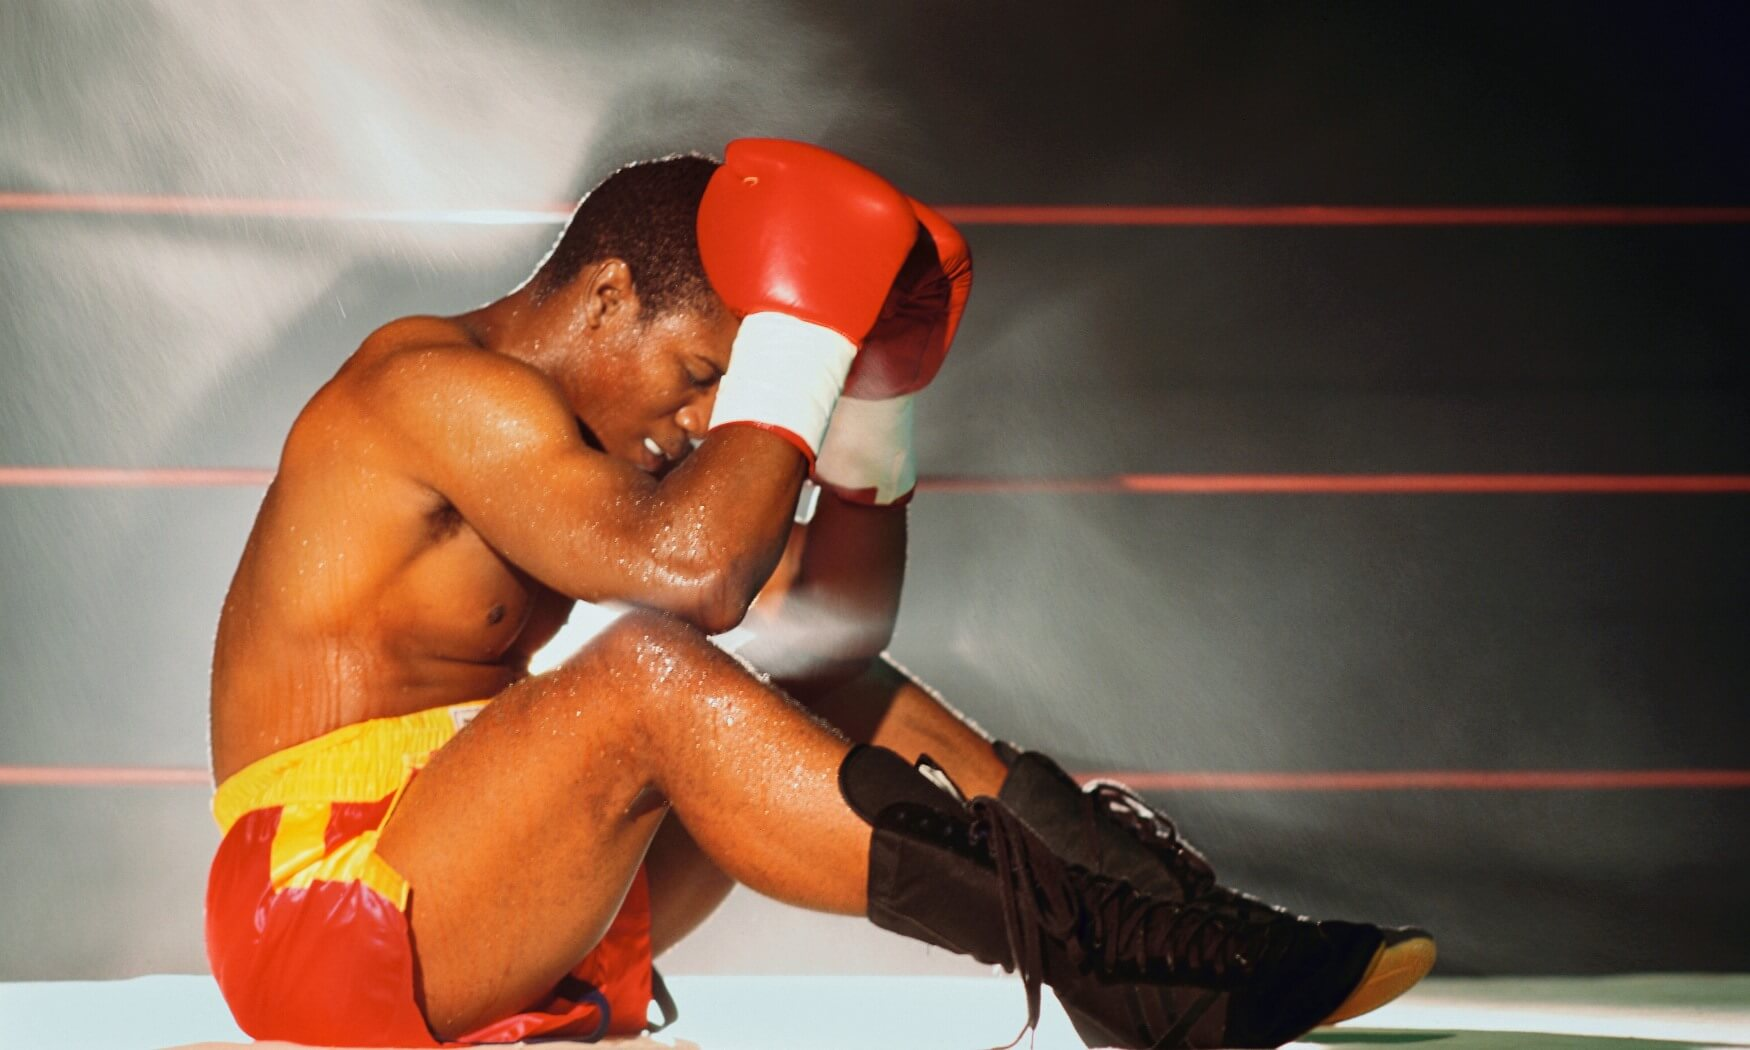 Dejected Boxer Sitting in the Ring